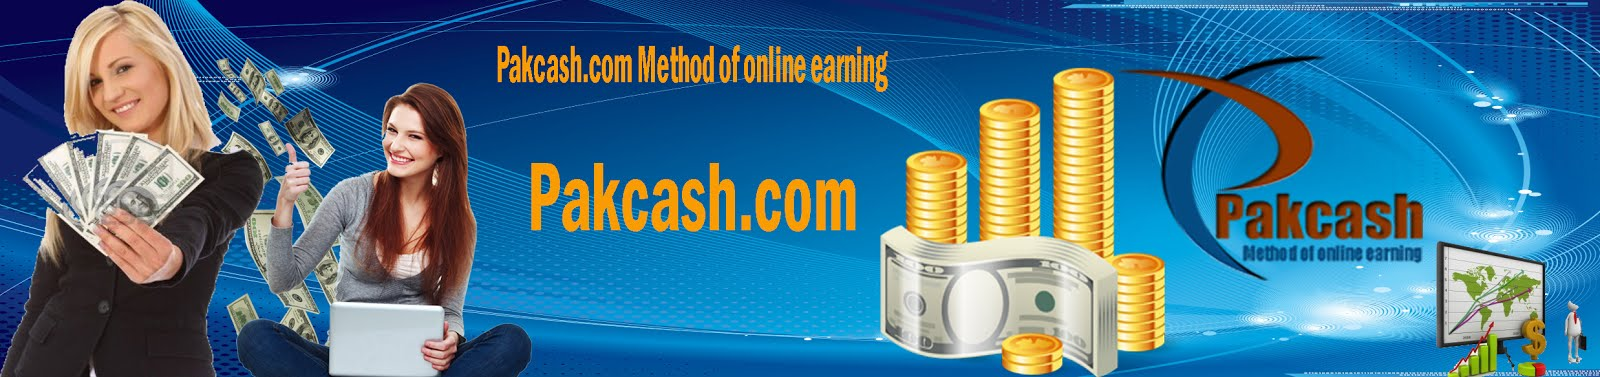 Pakcash.com Online Earning